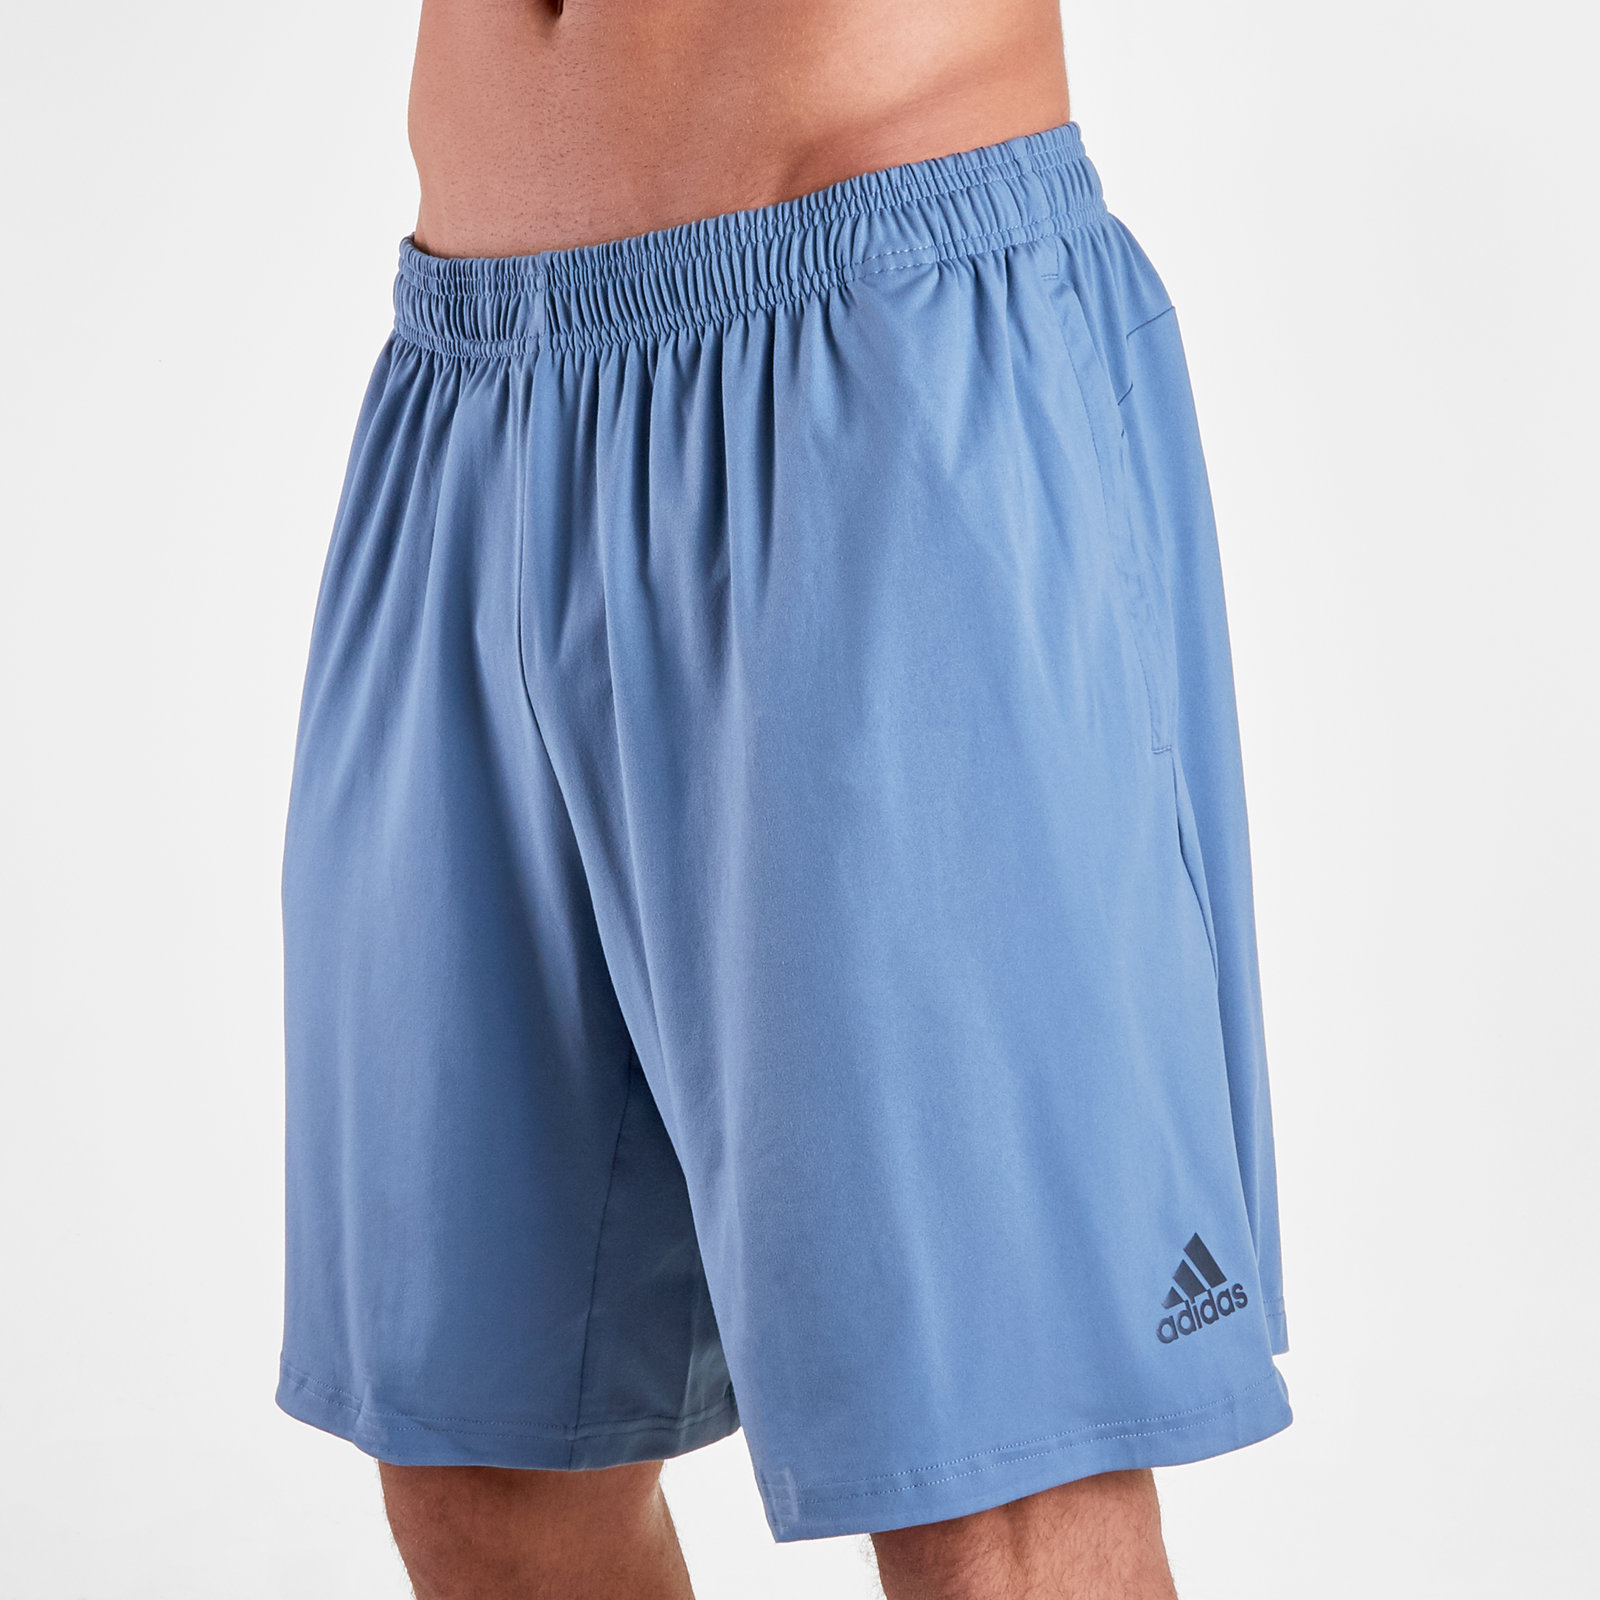 Image of 4KRFT ClimaLite Prime Training Shorts